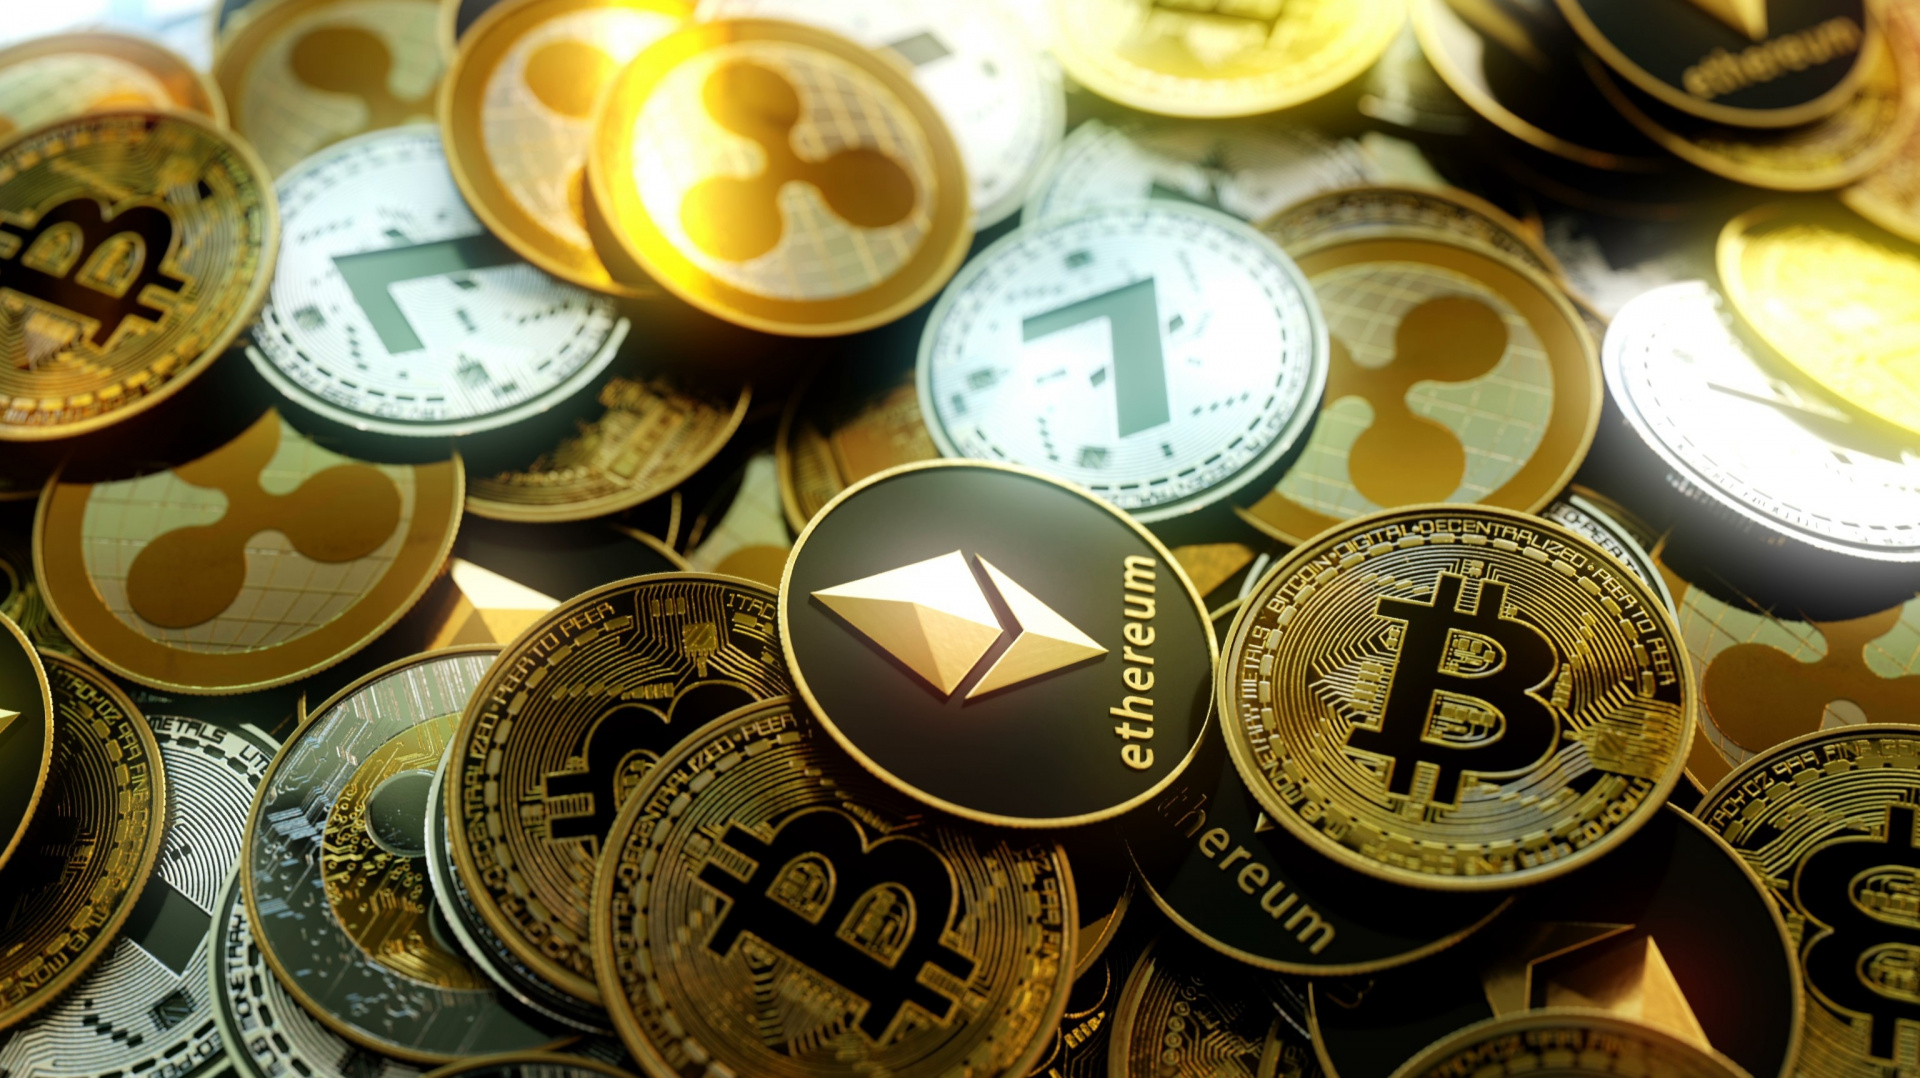 Cryptos Keep Getting Increasing Attention from Both Ordinary Users and Powerful Financial Regulators